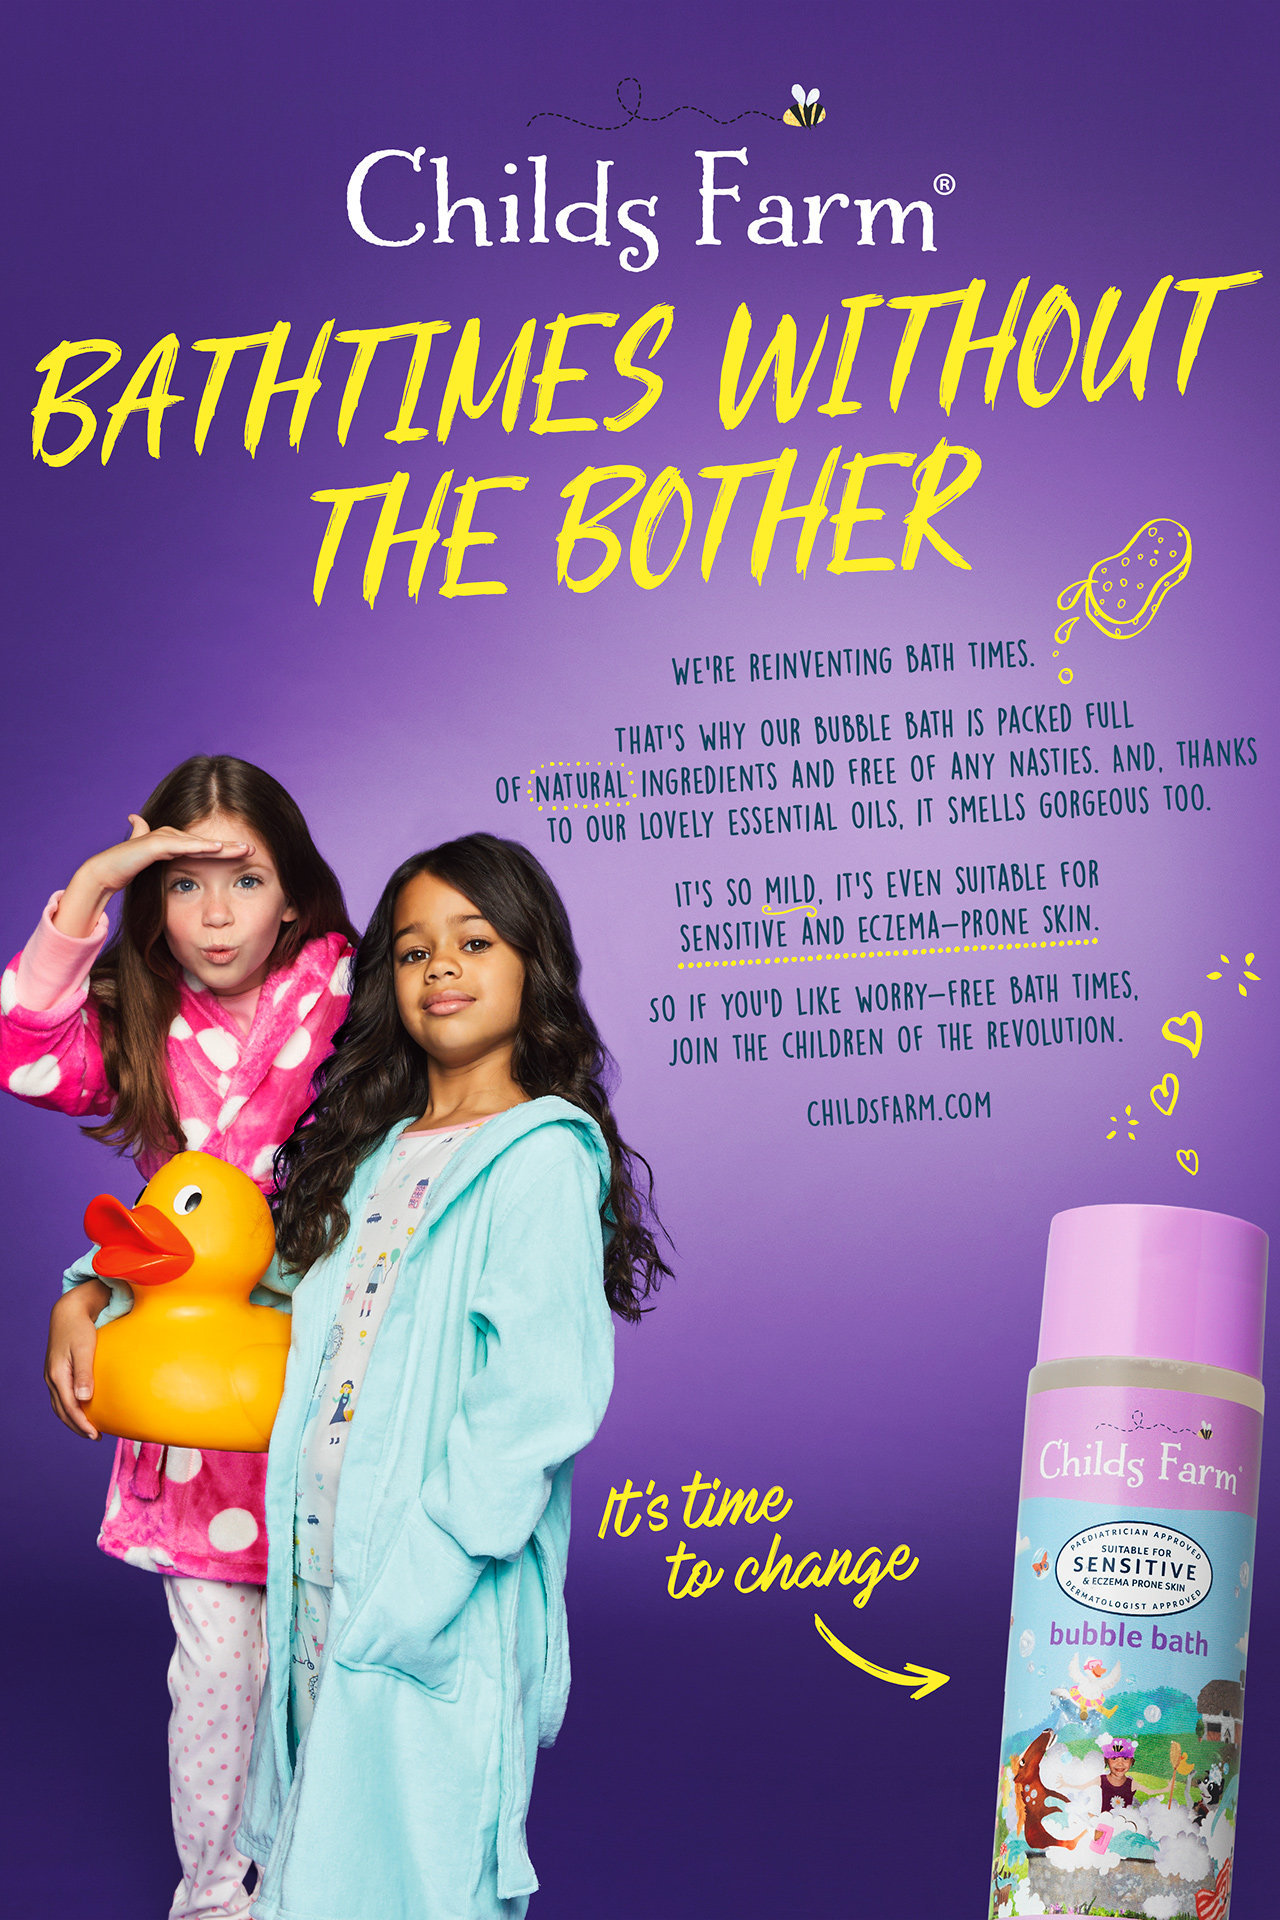 Childs-Farm-Master-Ad_BATHTIMES-WITHOUT-THE-BOTHER.jpg